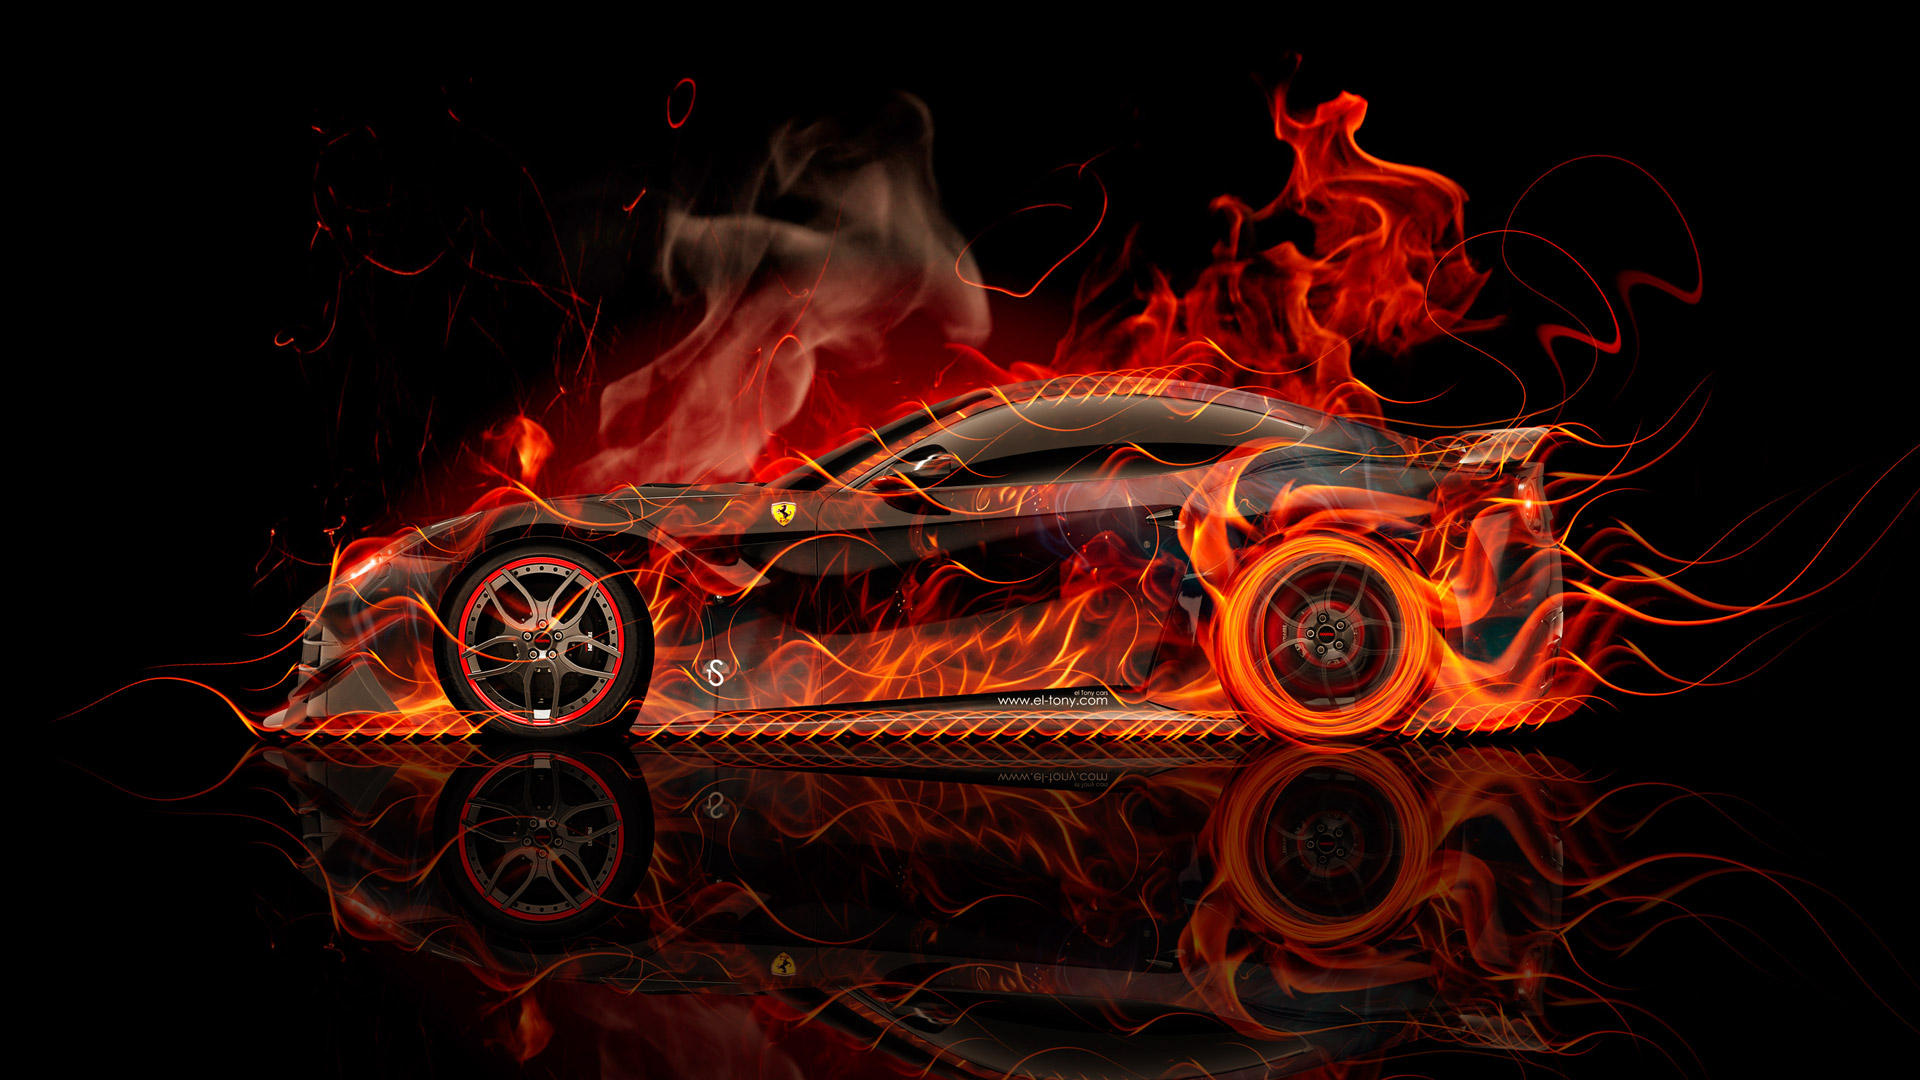 Ferrari-F12-Berlinetta-Side-Super-Fire-Abstract-Car-2015-Red-Yellow-Orange-Black-Colors-HD-Wallpapers-design-by-Tony-Kokhan-www.el-tony.com-image